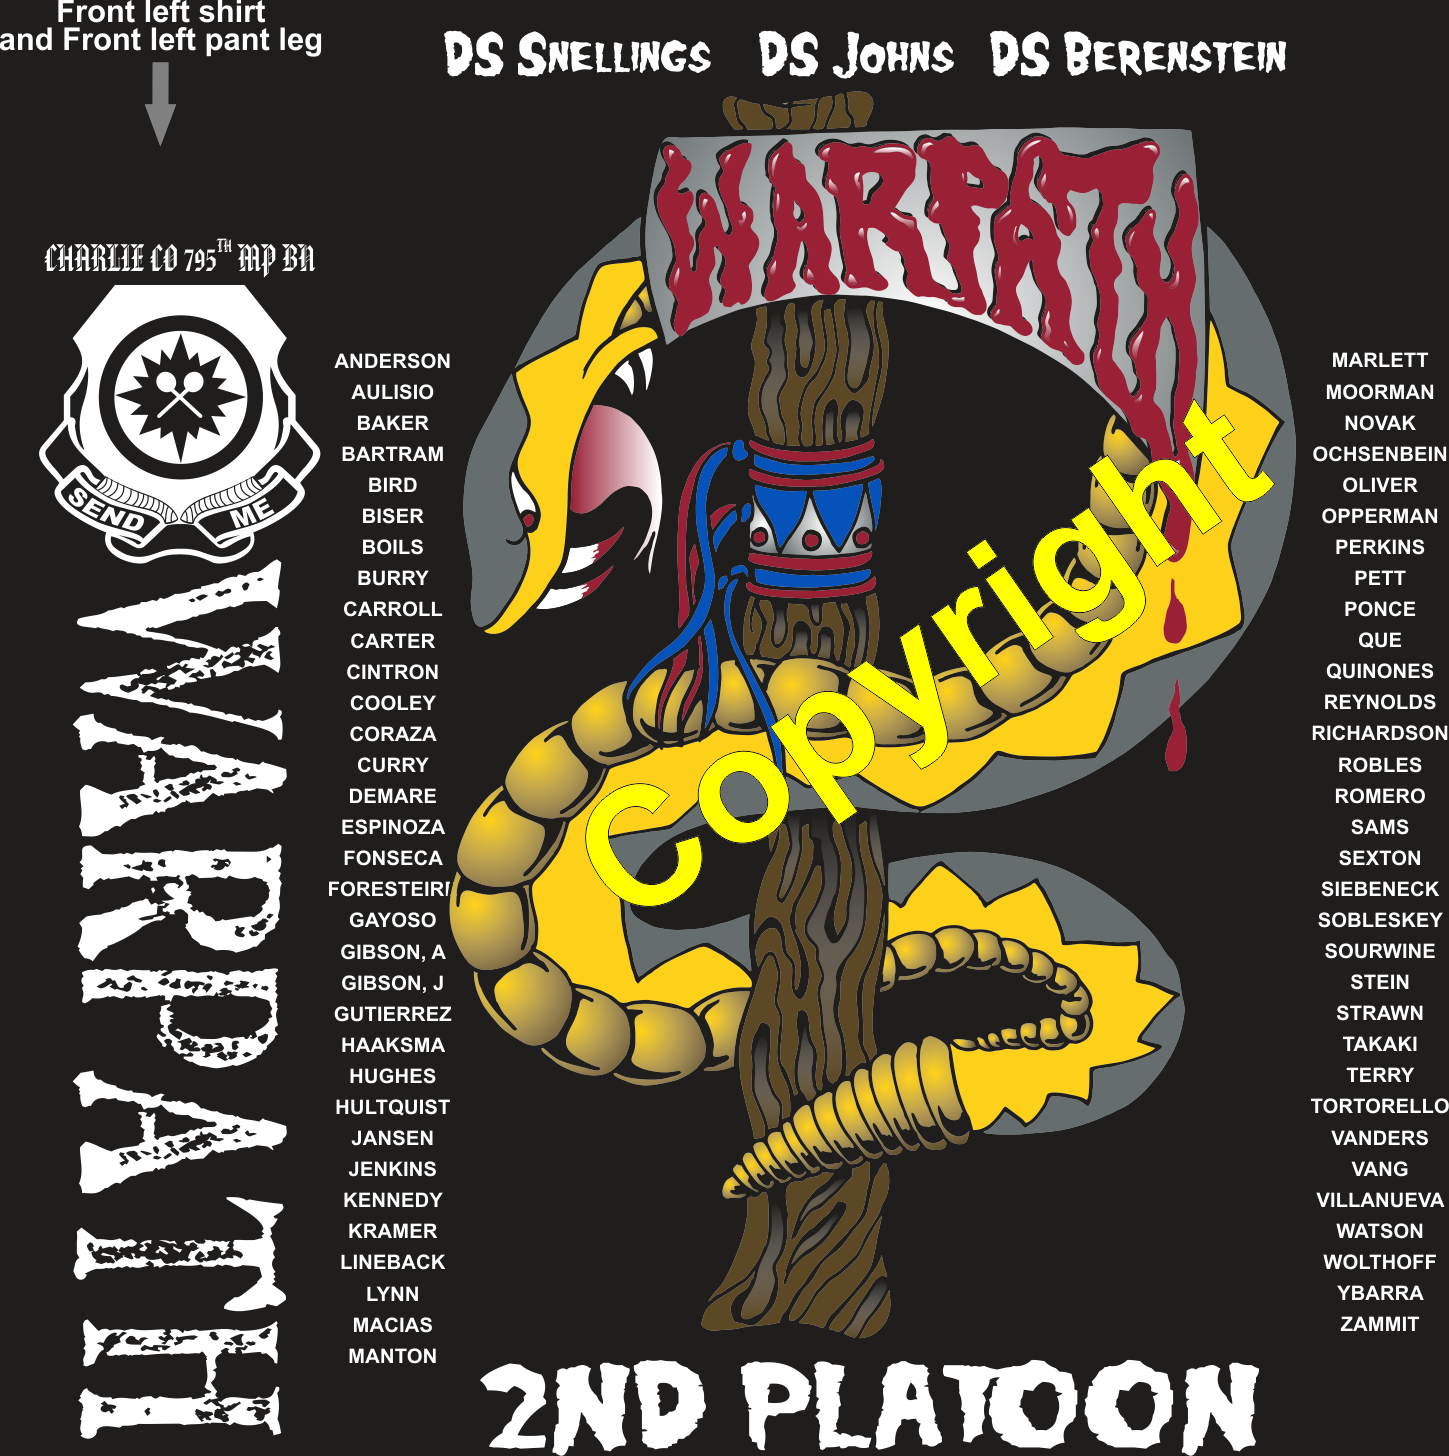 CHARLIE 795 WAR PATH GRADUATING DAY 5-24-2018 digital